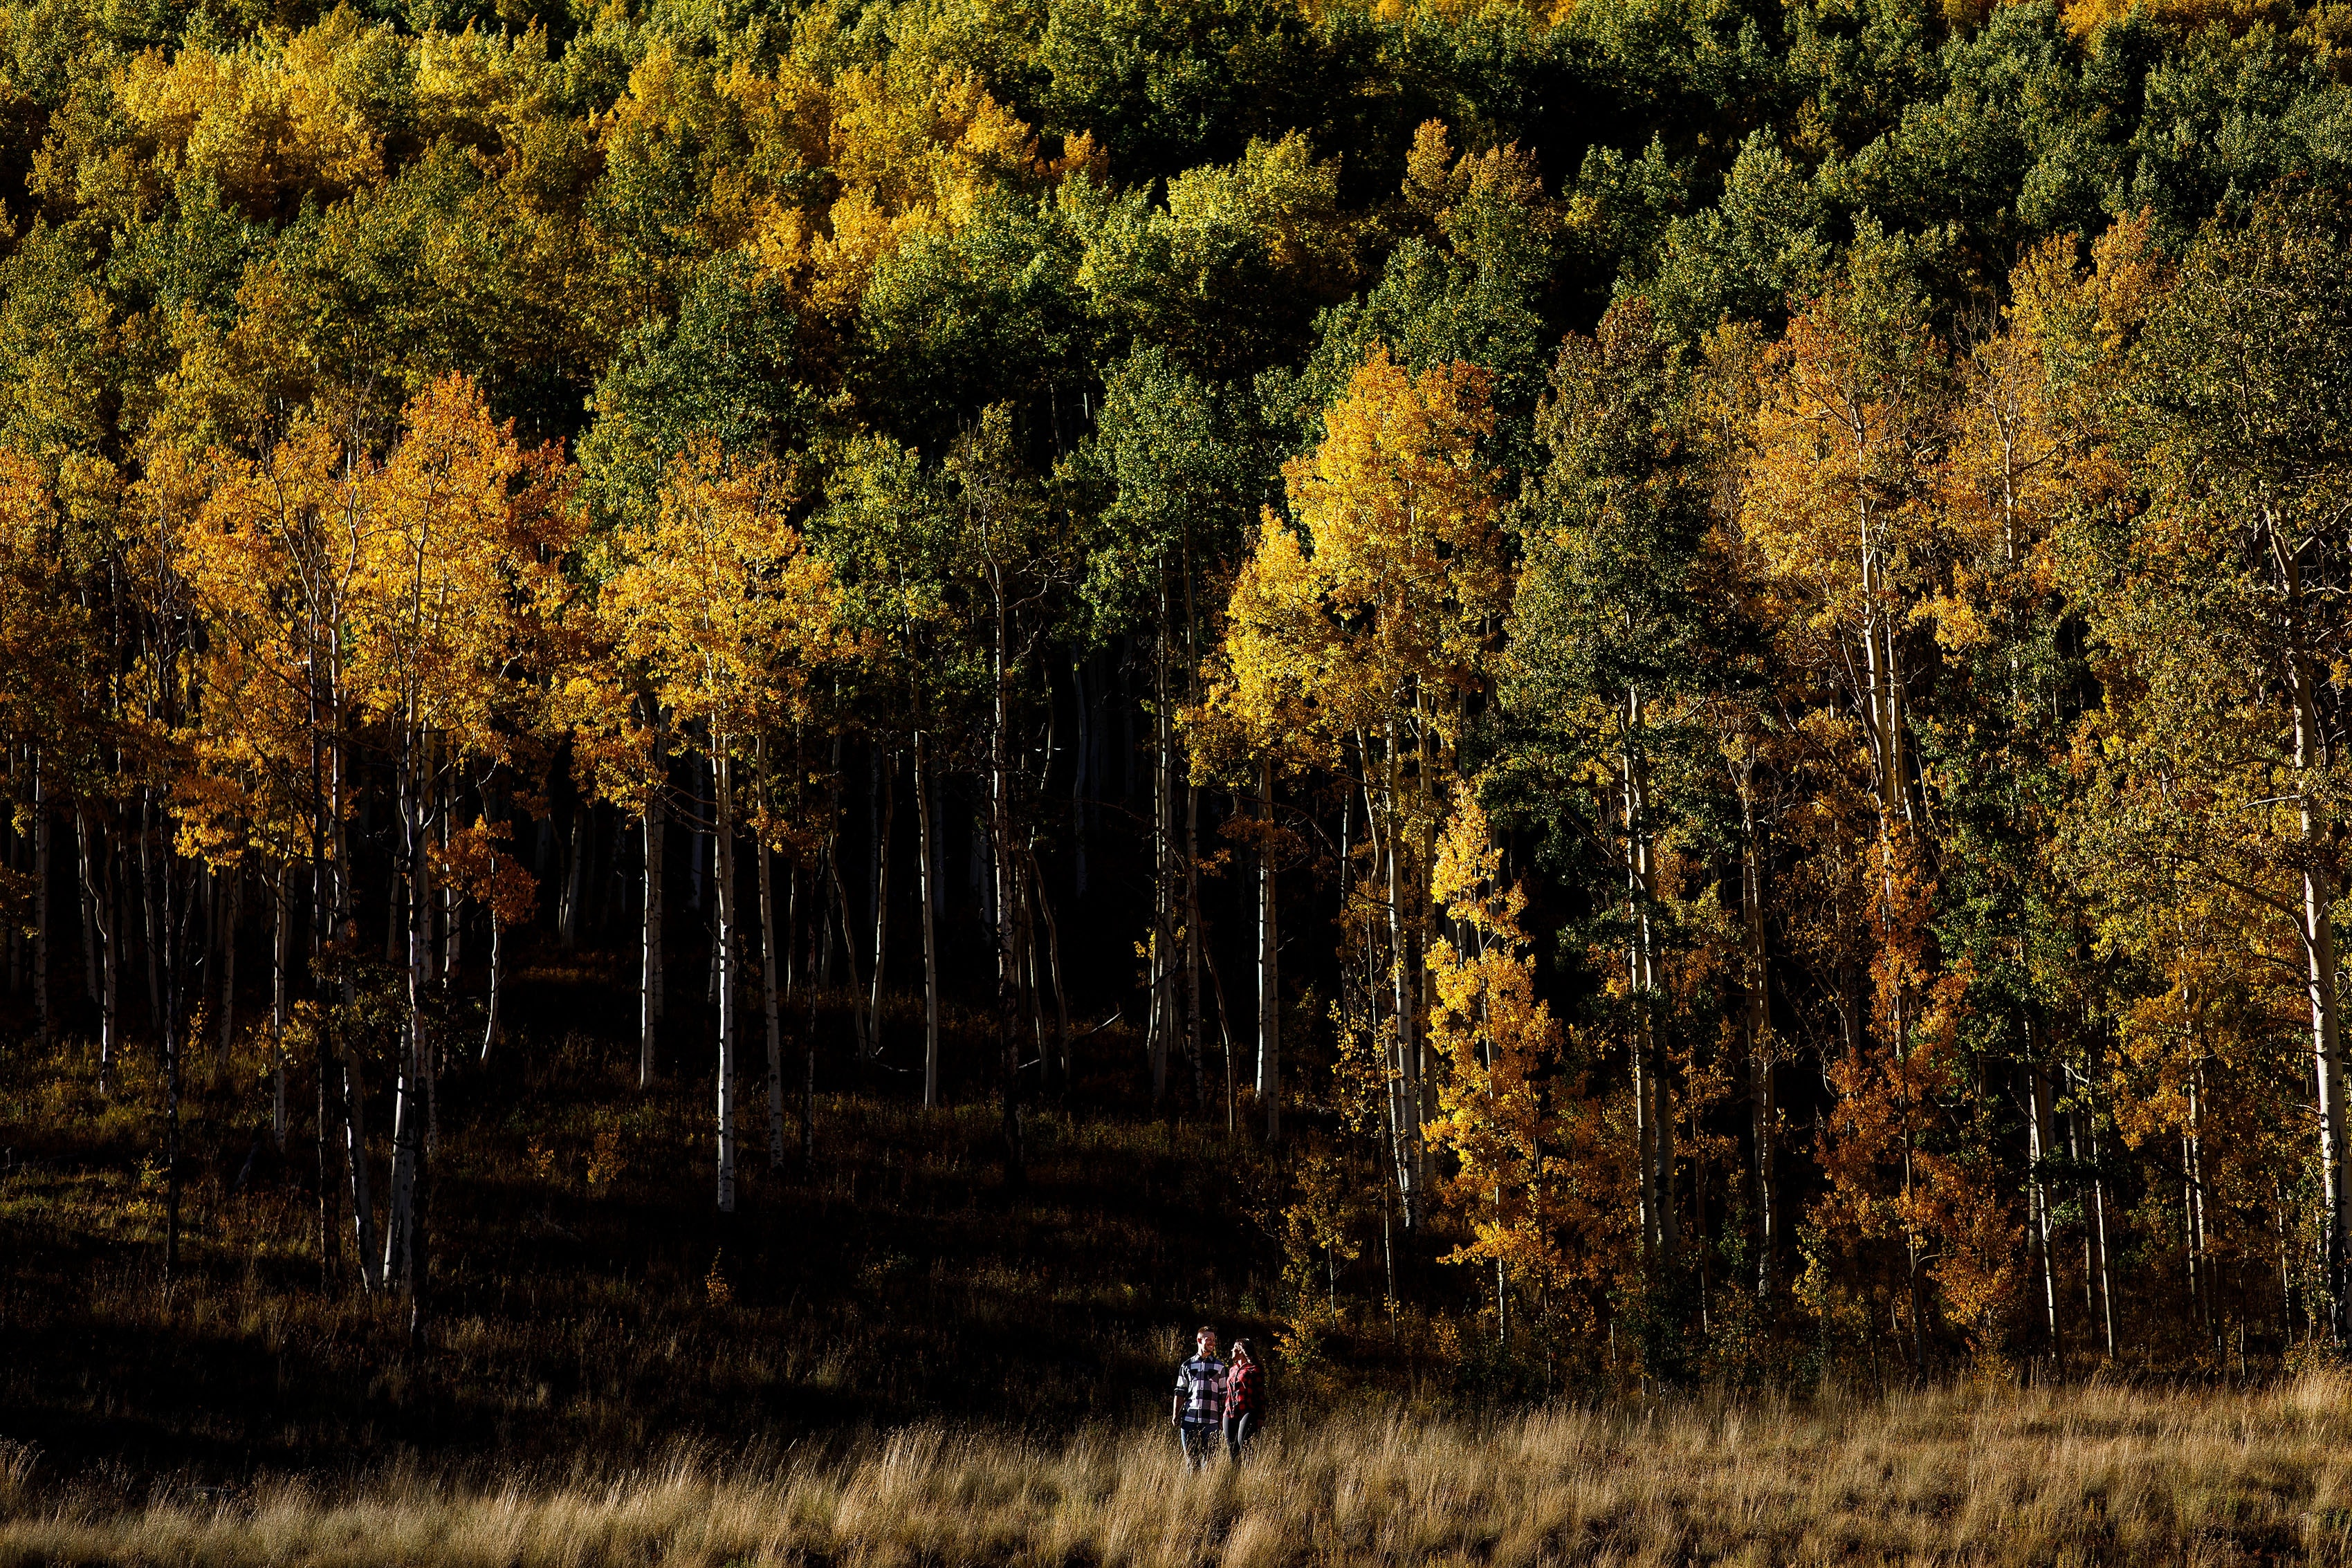 Caroline and Brendan walk together near a grove of colorful aspen trees at Piney River Ranch